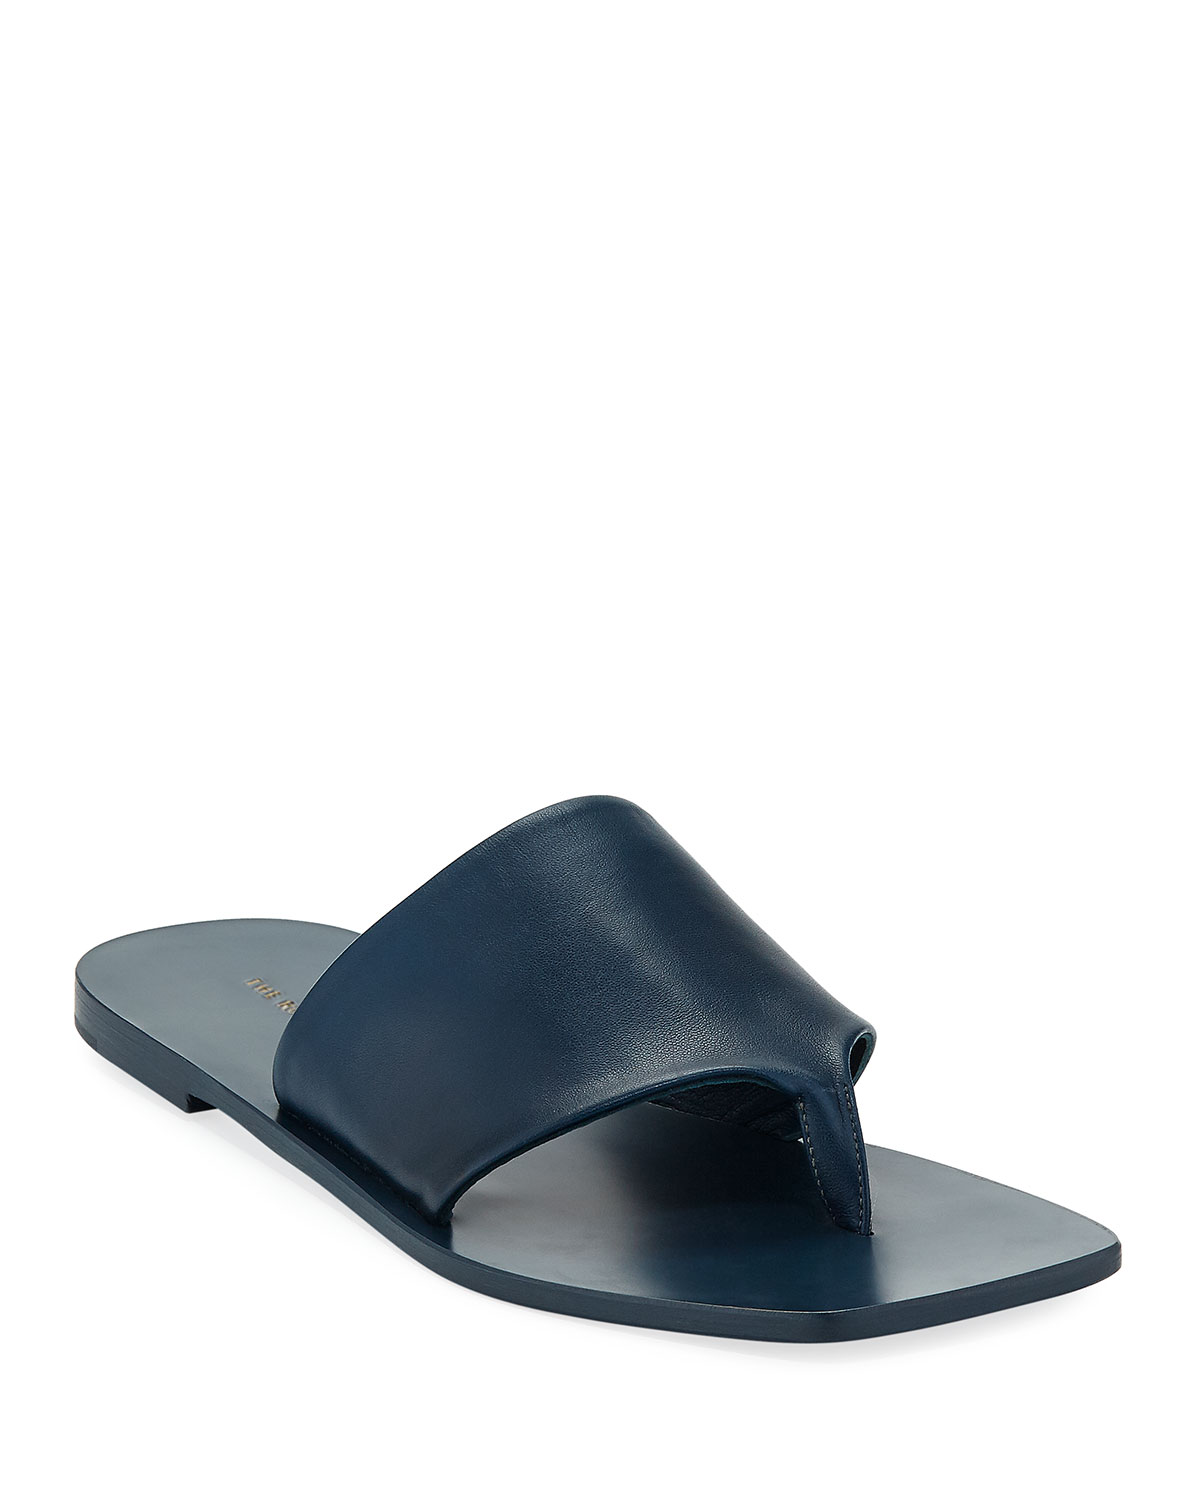 30dfad33f09 THE ROW Flat Napa Leather Thong Sandal